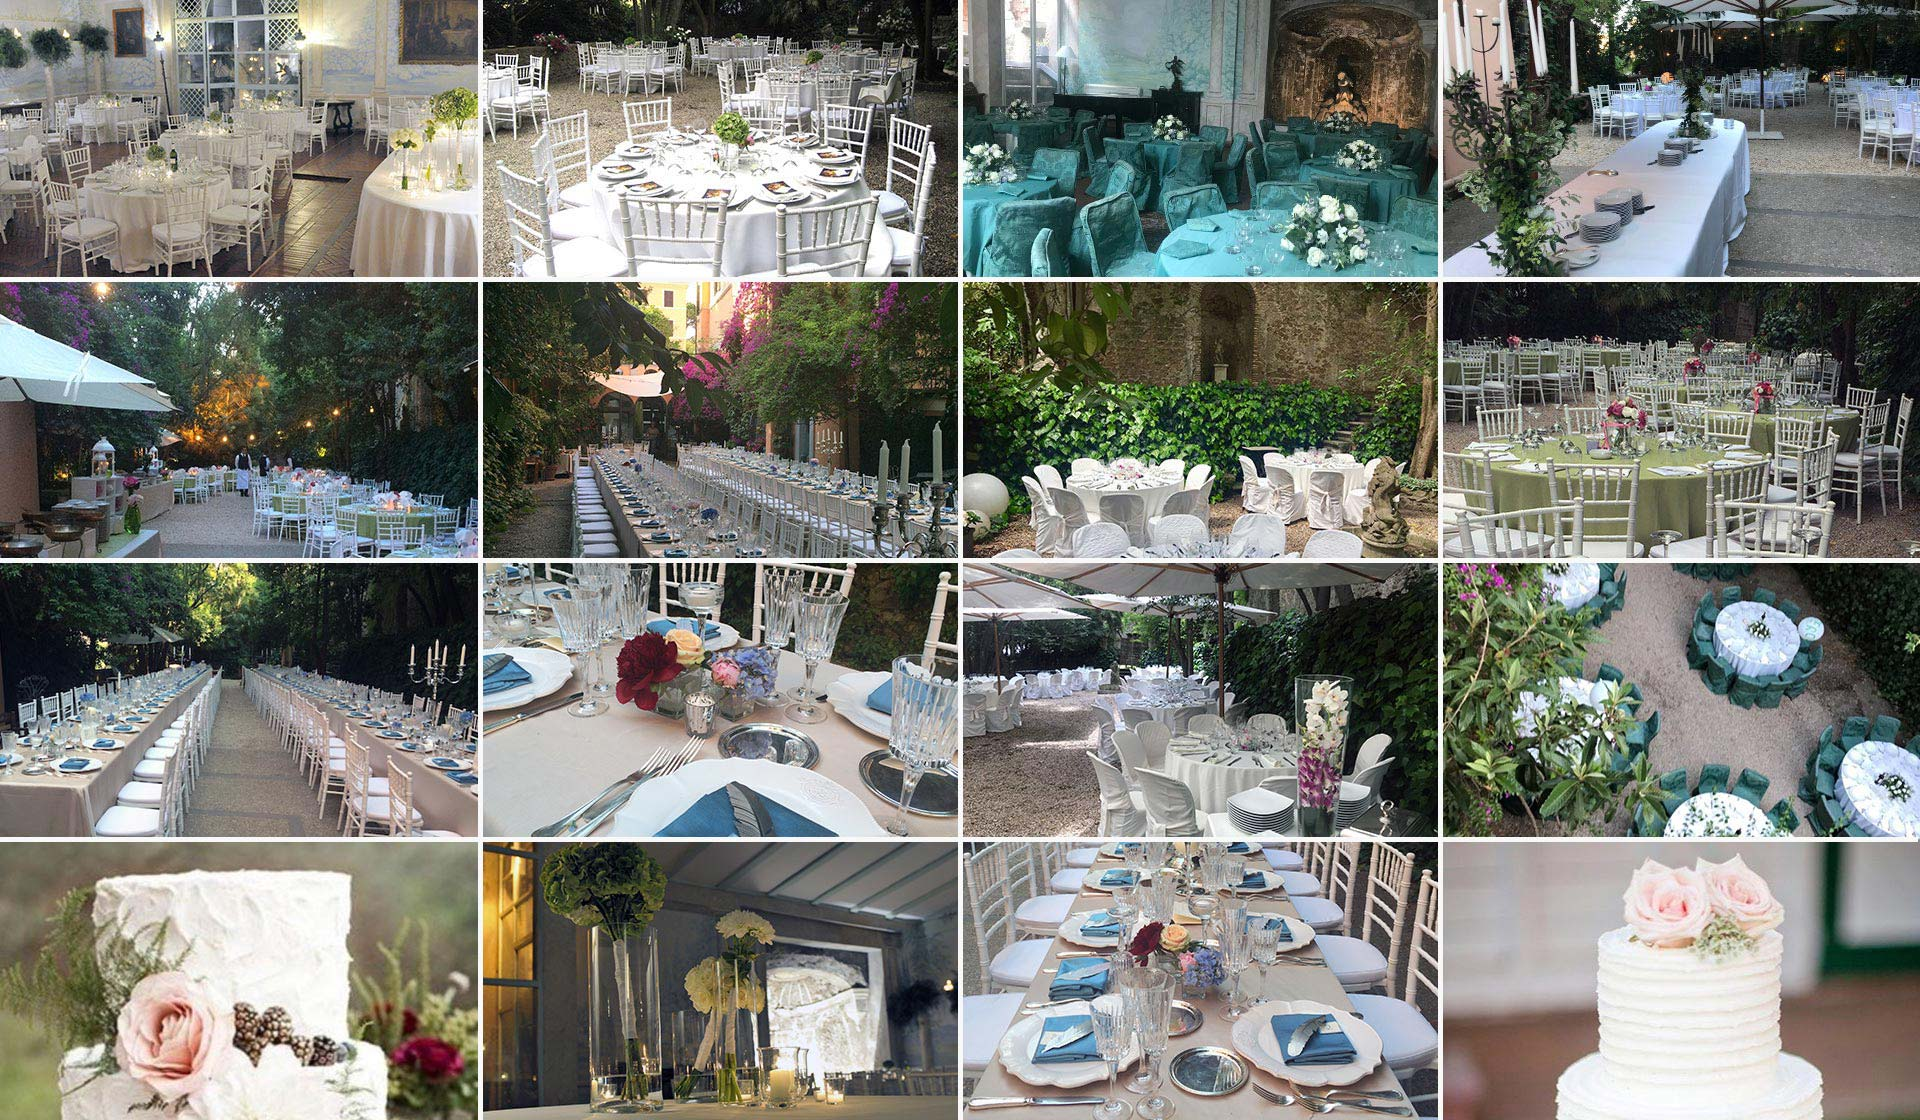 Wedding Villa Sospisio Rome